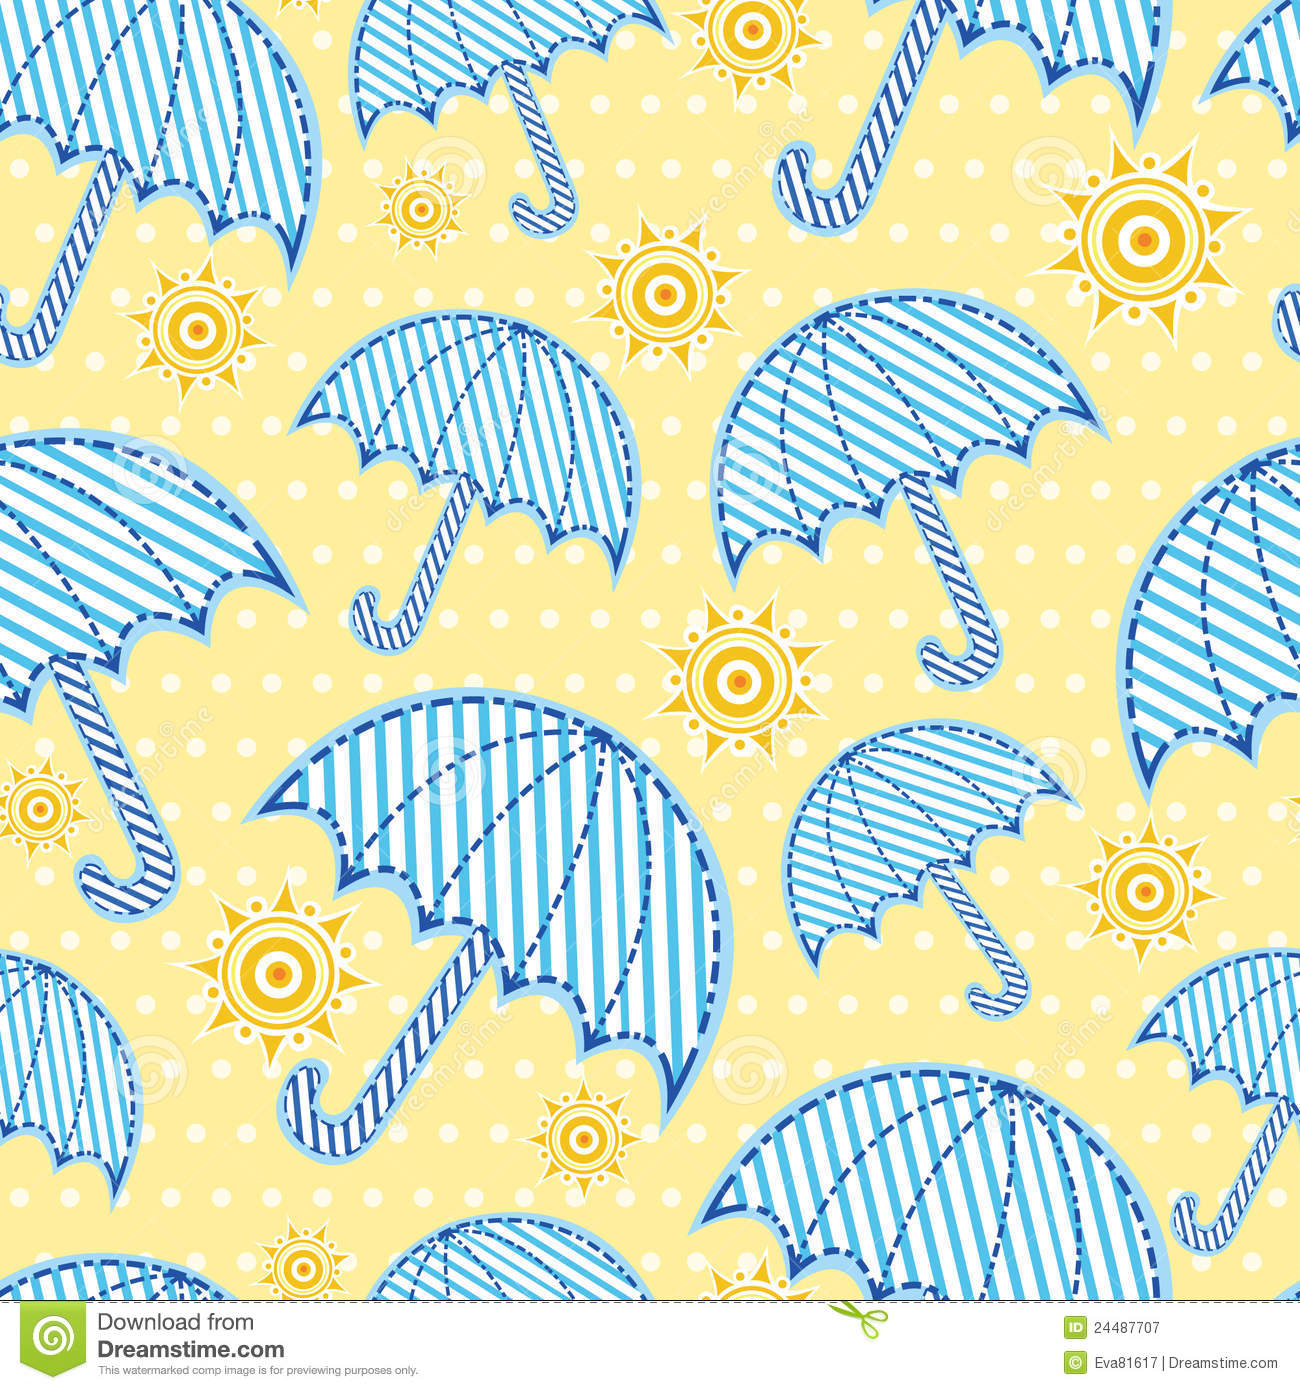 Umbrella Pattern Magnificent Inspiration